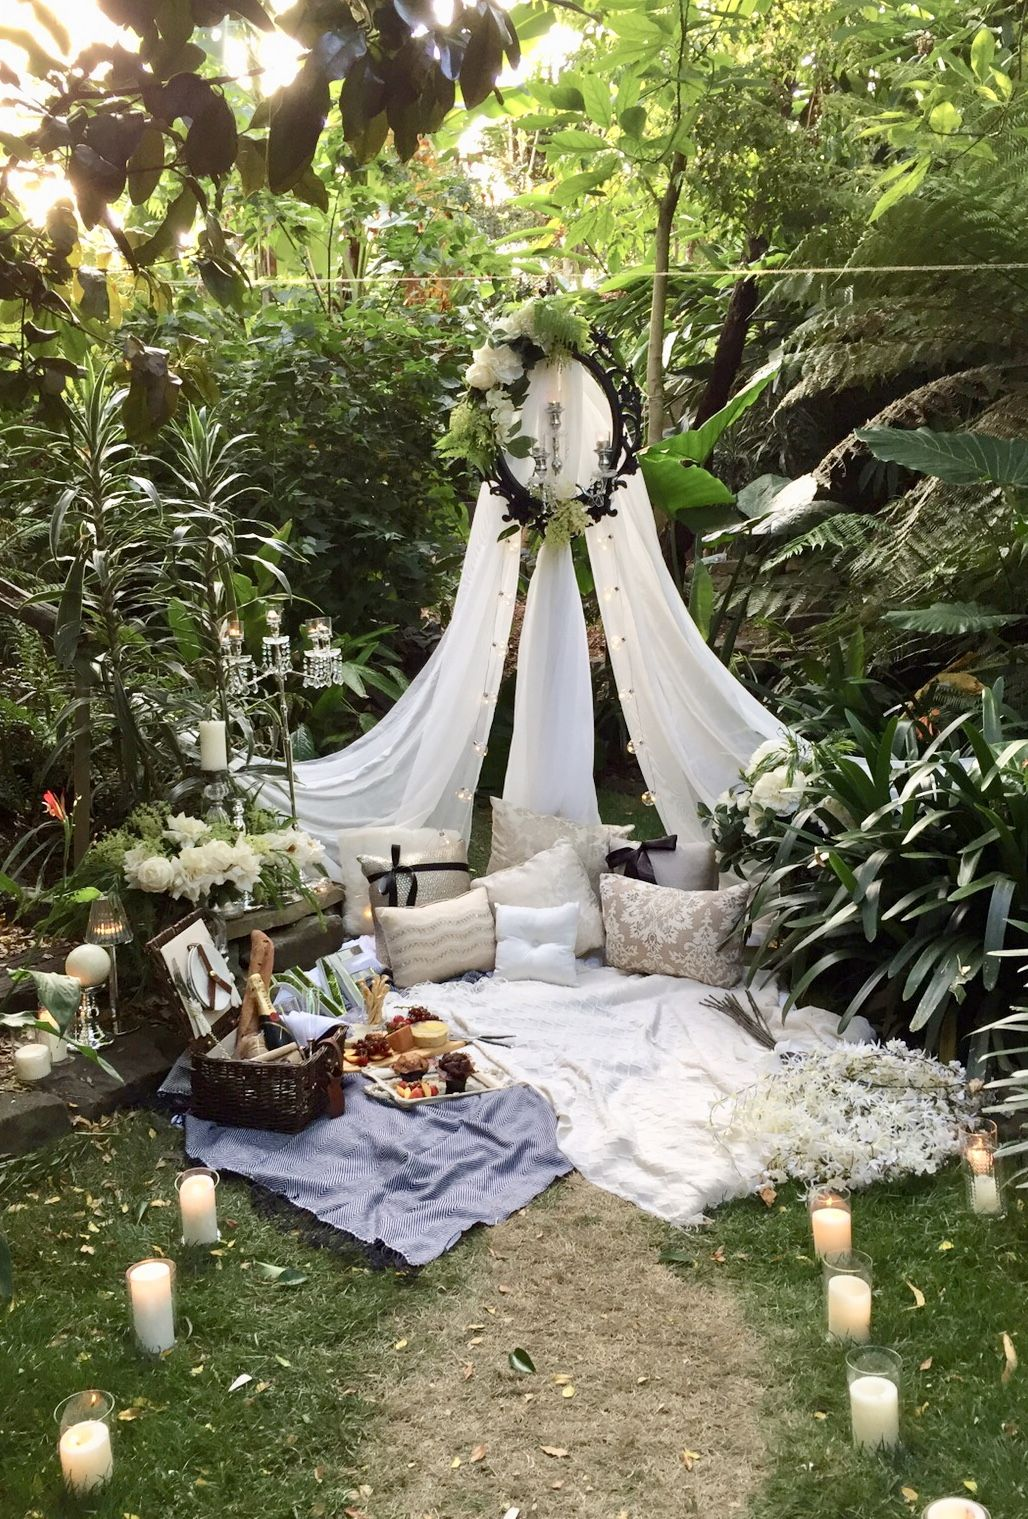 A Beautiful Styled Romantic Picnic For Two In A Secret Garden Setting Ready For A Surprise Marriage Proposal Ww Romantic Picnics Outdoor Decor Backyard Party